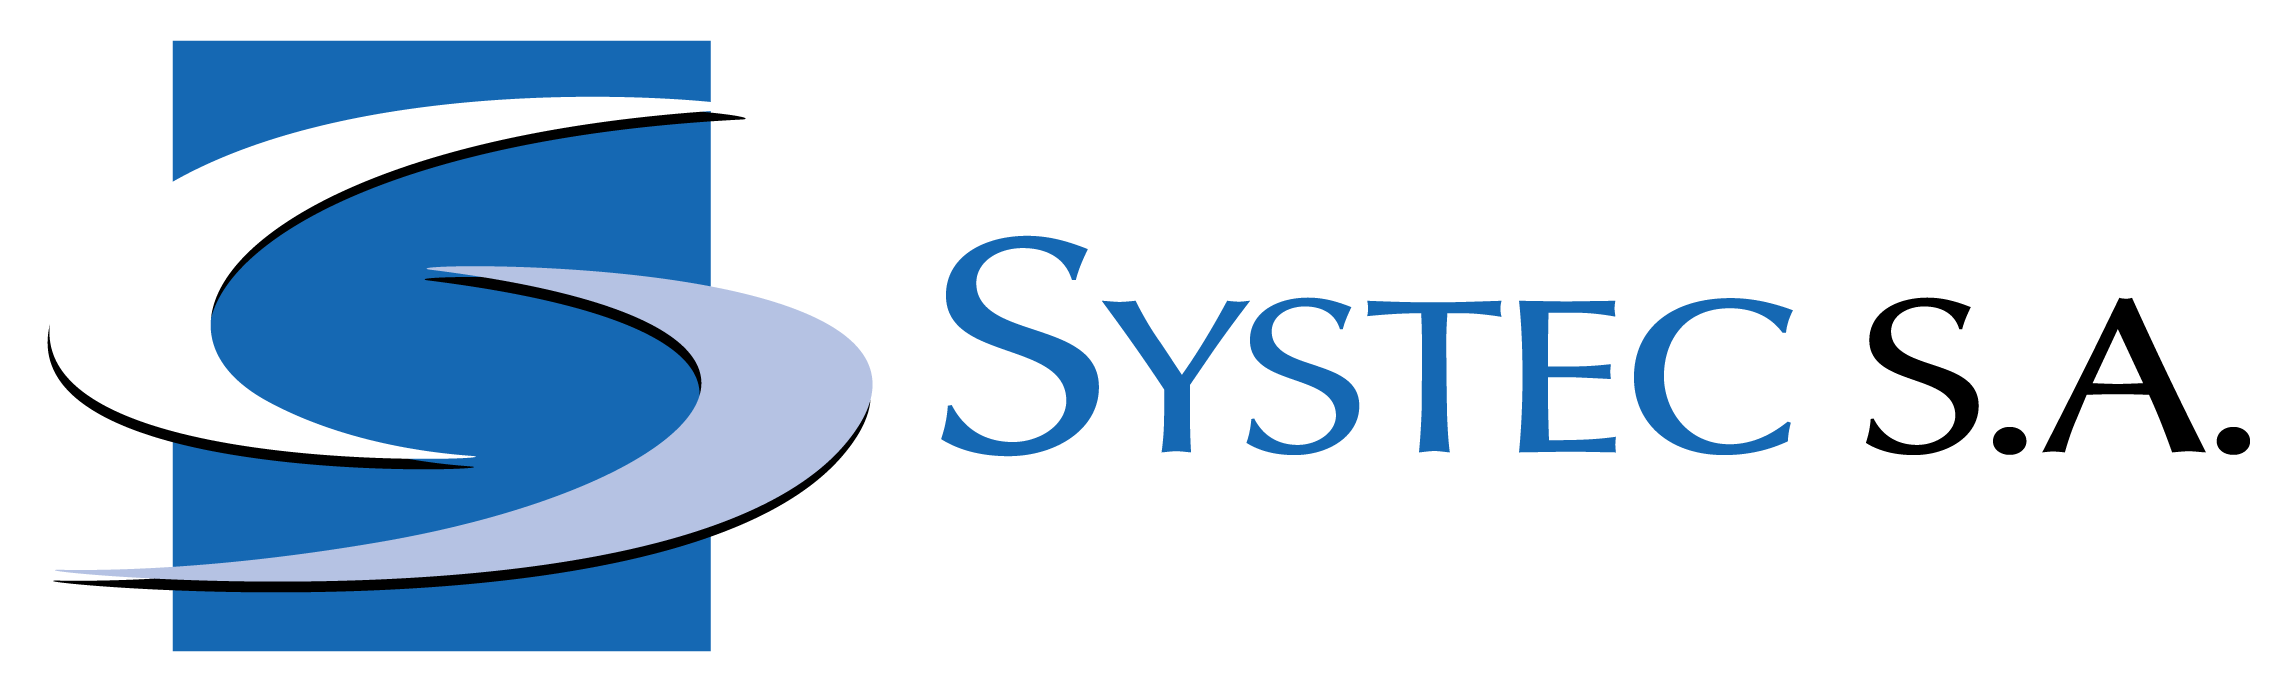 SYSTEC S.A Industrial Products